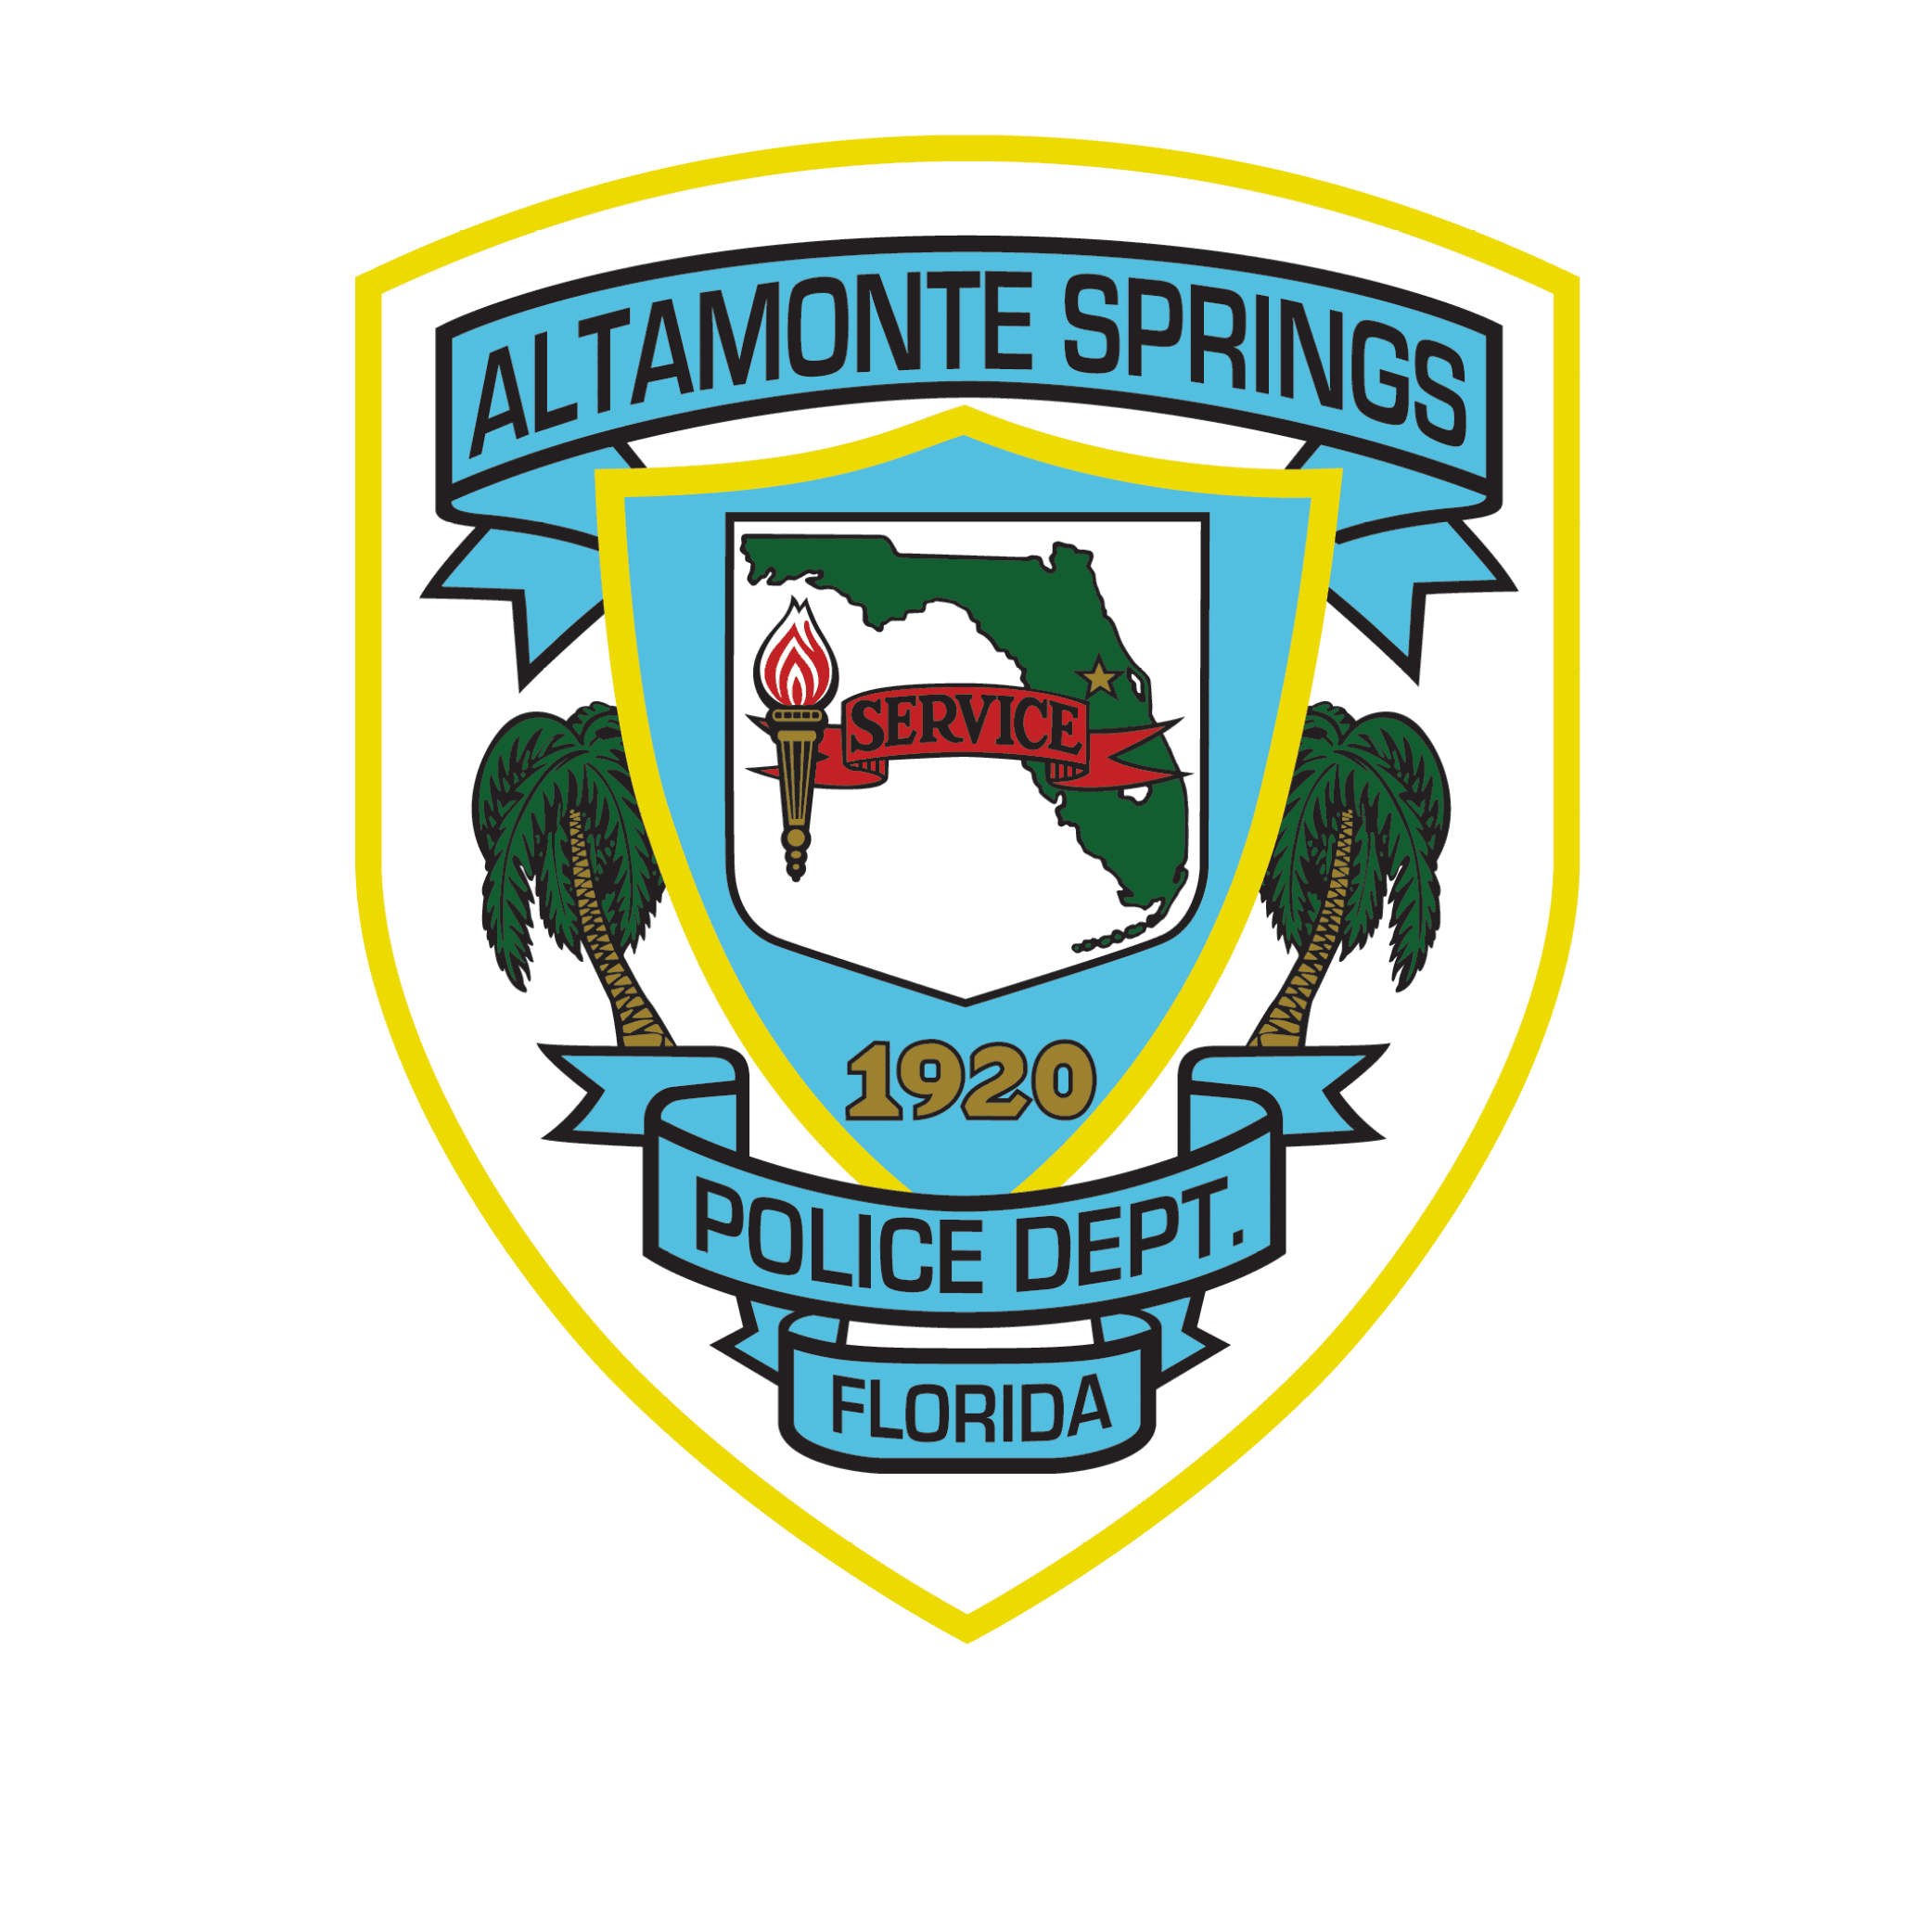 Altamonte Springs Police Department Logo